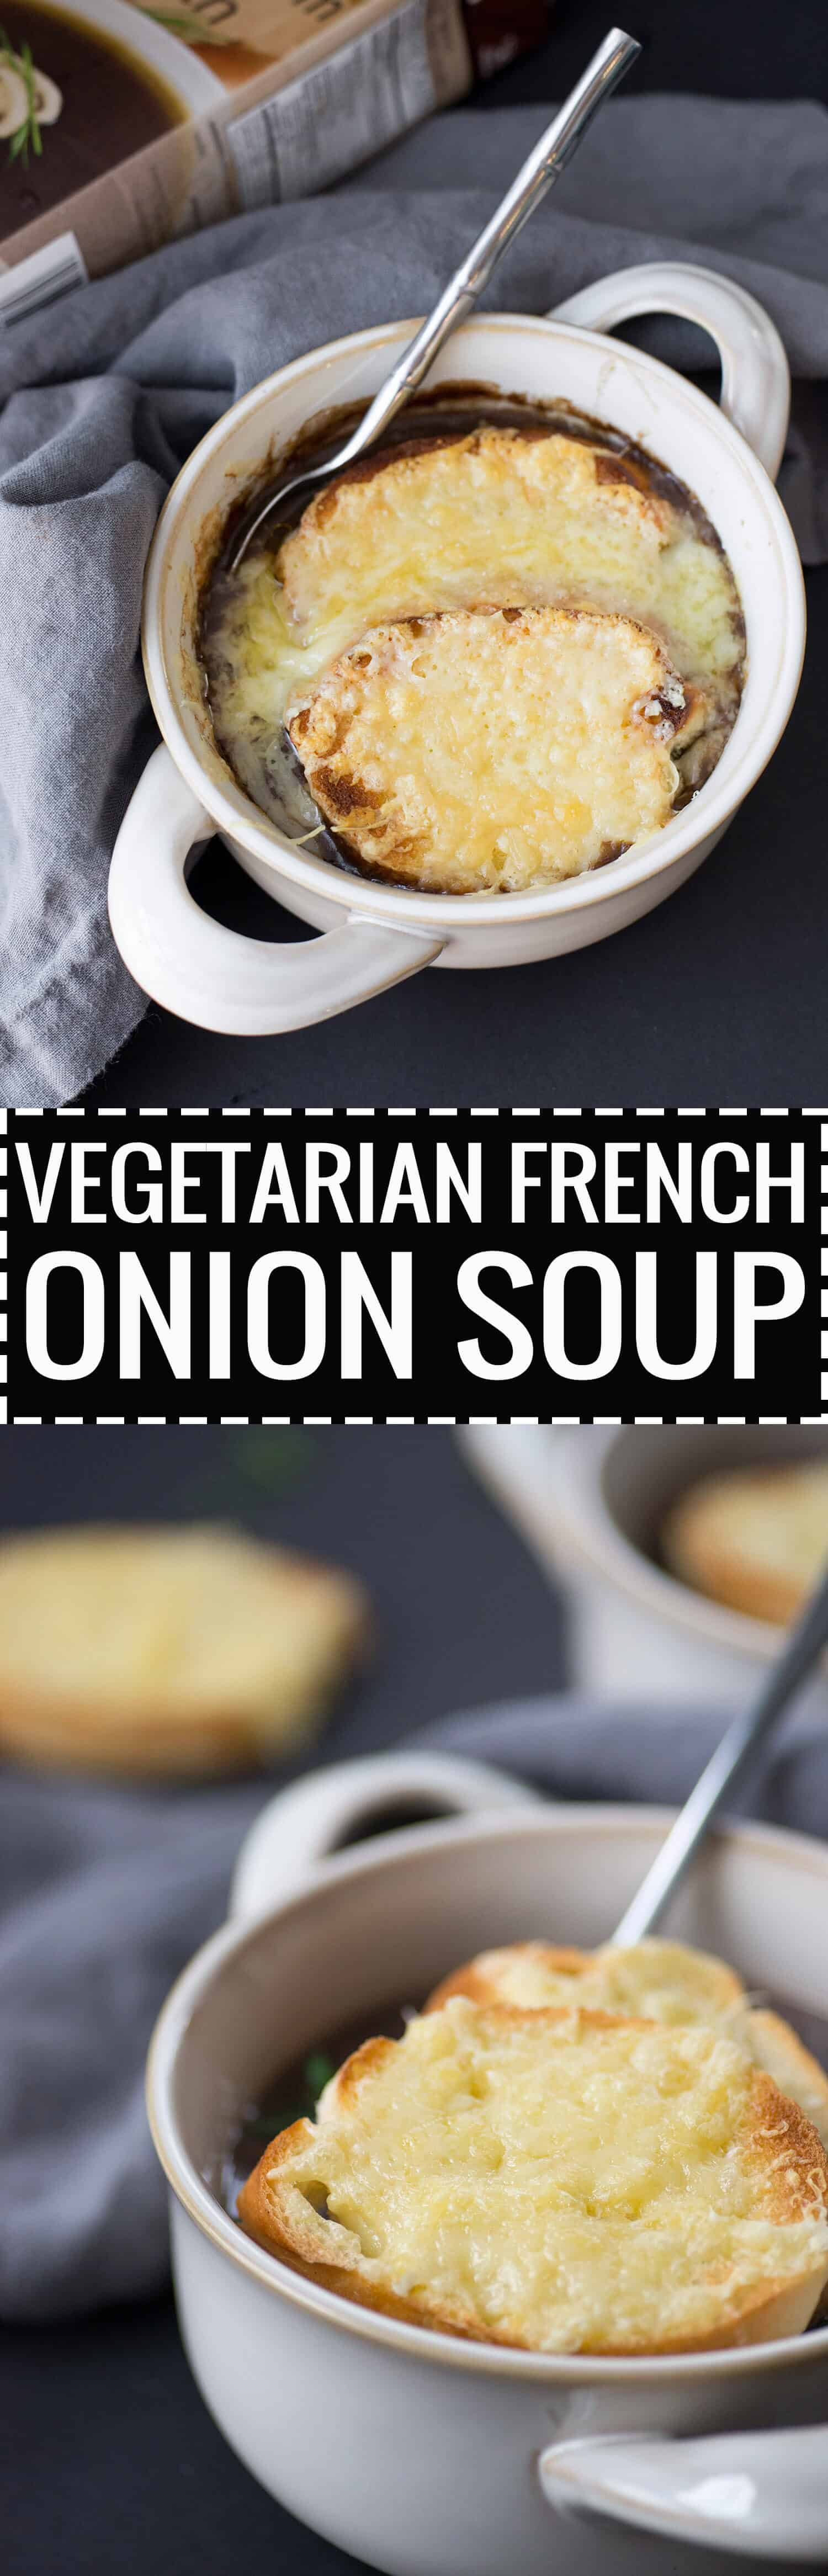 Vegetarian French Onion Soup! Super flavorful, rich and comforting. A must-make this Fall and Winter. | www.delishknowledge.com